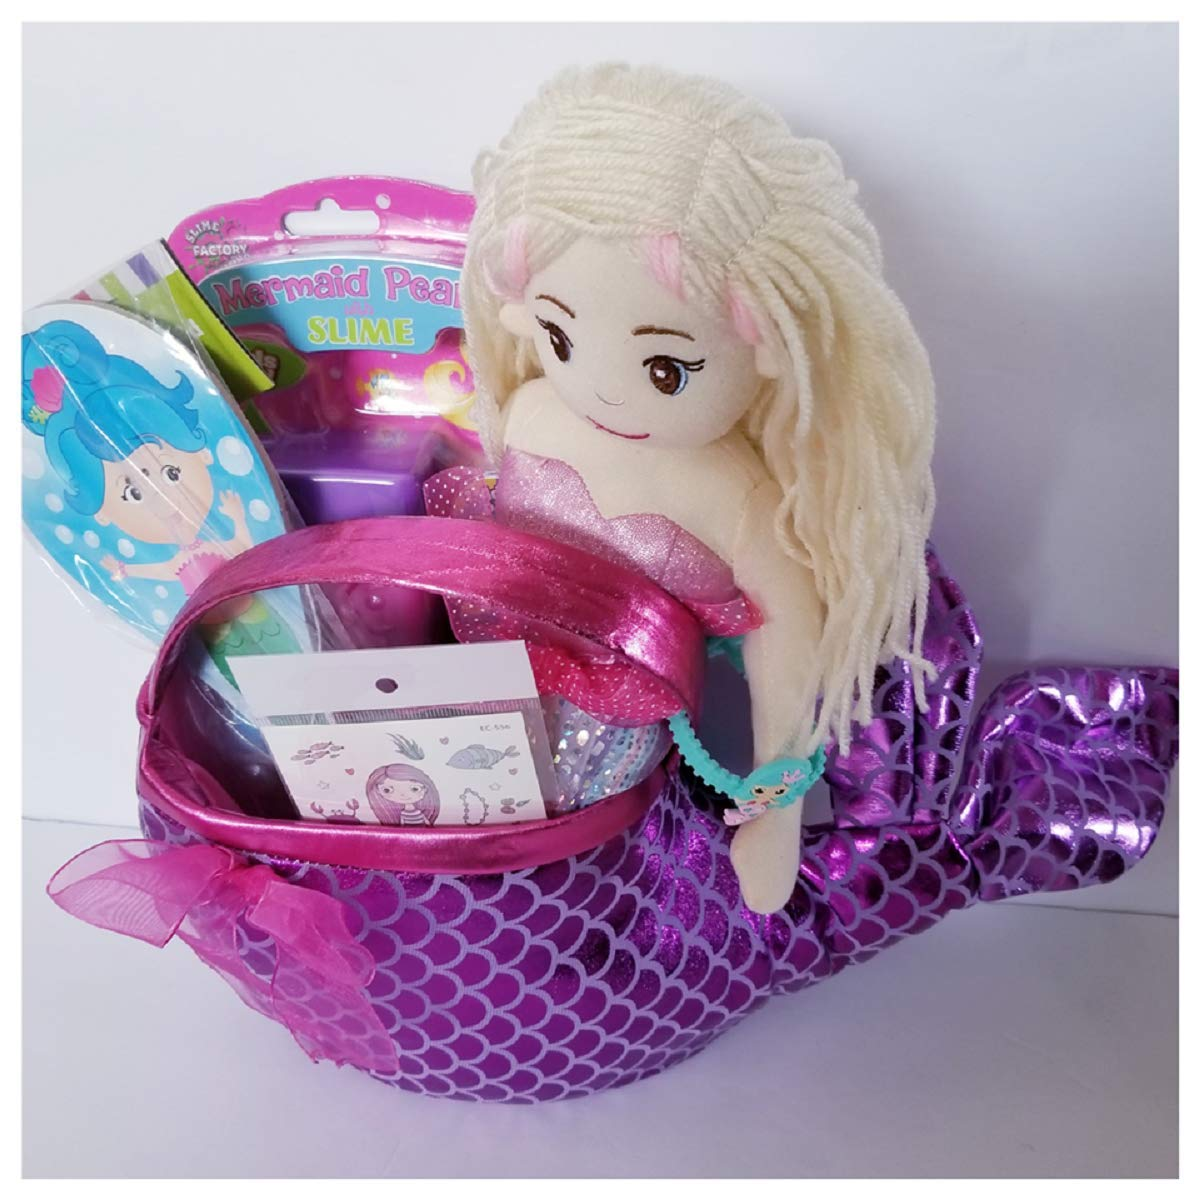 Queen of the Castle Mermaid Themed Easter Basket Includes Mermaid 15'' Tall with Curved Tail